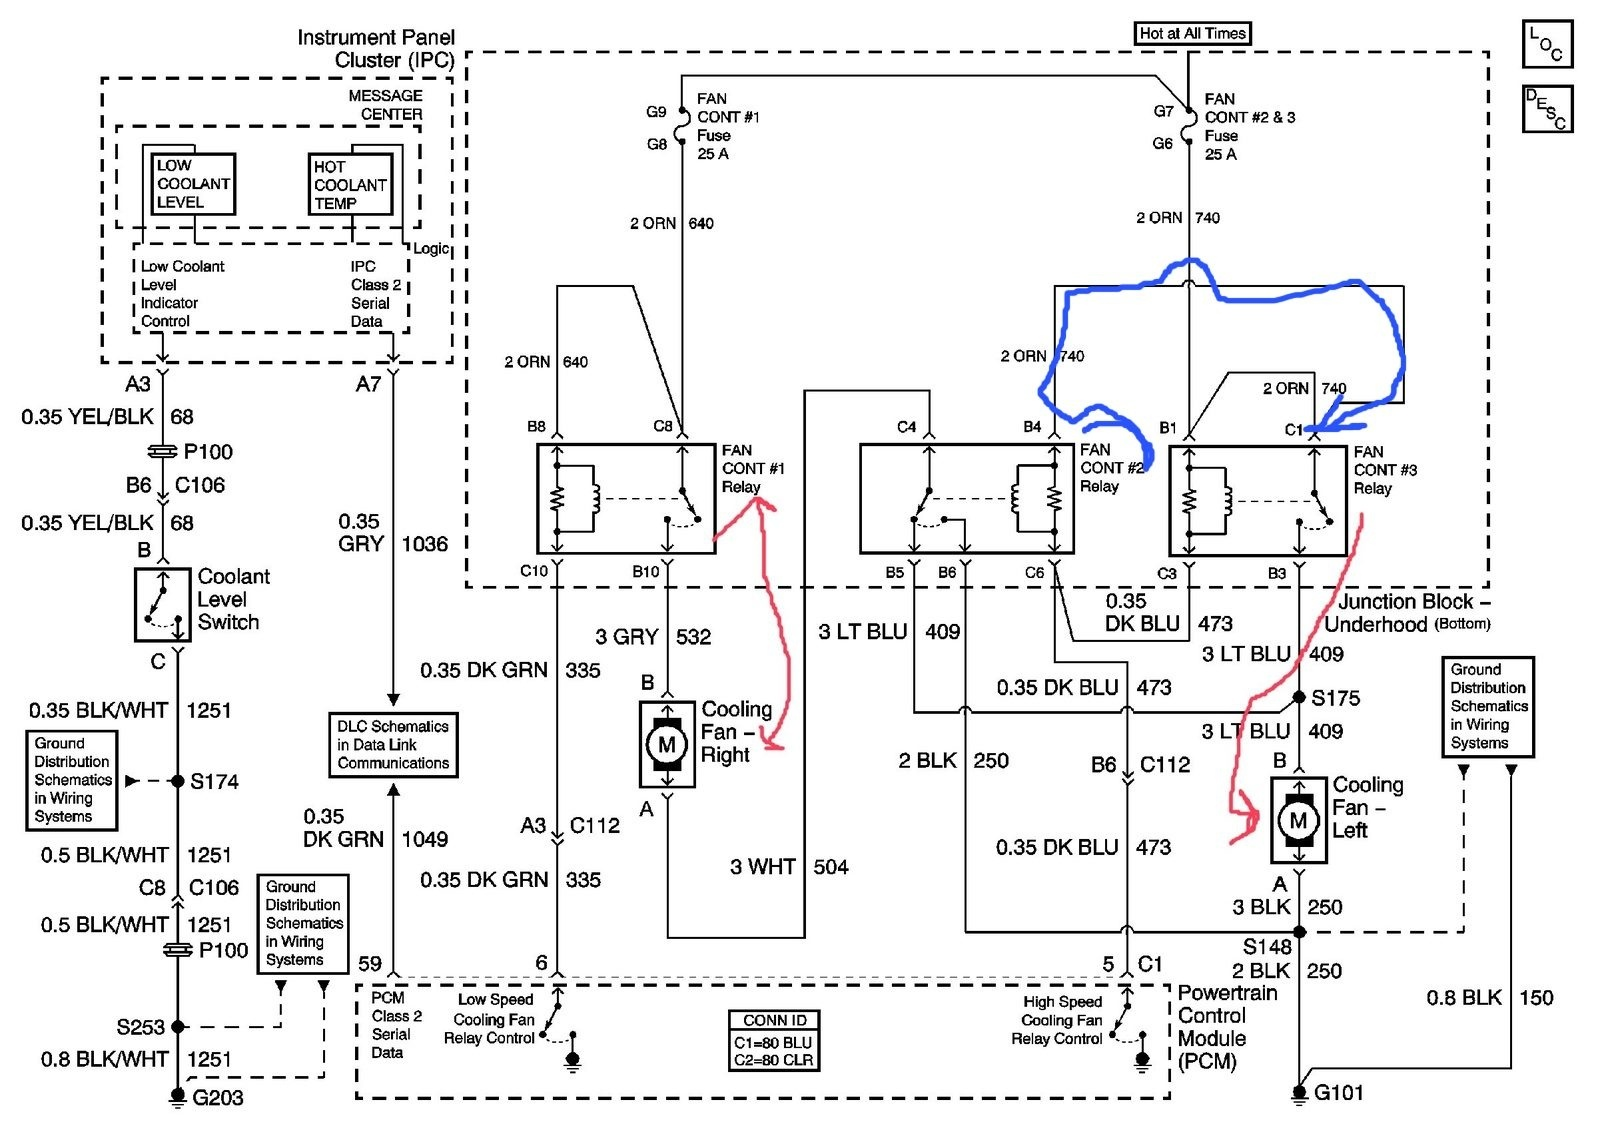 2001 Chevy Impala 3 8 Engine Diagram - Wiring Diagram Online on 2002 chevy venture engine diagram, 2004 chevy express engine diagram, chevy impala 3800 engine diagram, pontiac 3.4 engine diagram, 2002 chevy avalanche parts diagram, 2000 impala vacuum hose diagram, 2000 impala parts diagram, 2002 impala cooling system diagram, 2005 impala cooling system diagram, 2001 chevy s10 engine diagram, 3800 v6 engine diagram, chevrolet engine diagram, 2002 chevy cavalier exhaust system diagram, 2002 chevy blazer parts diagram,